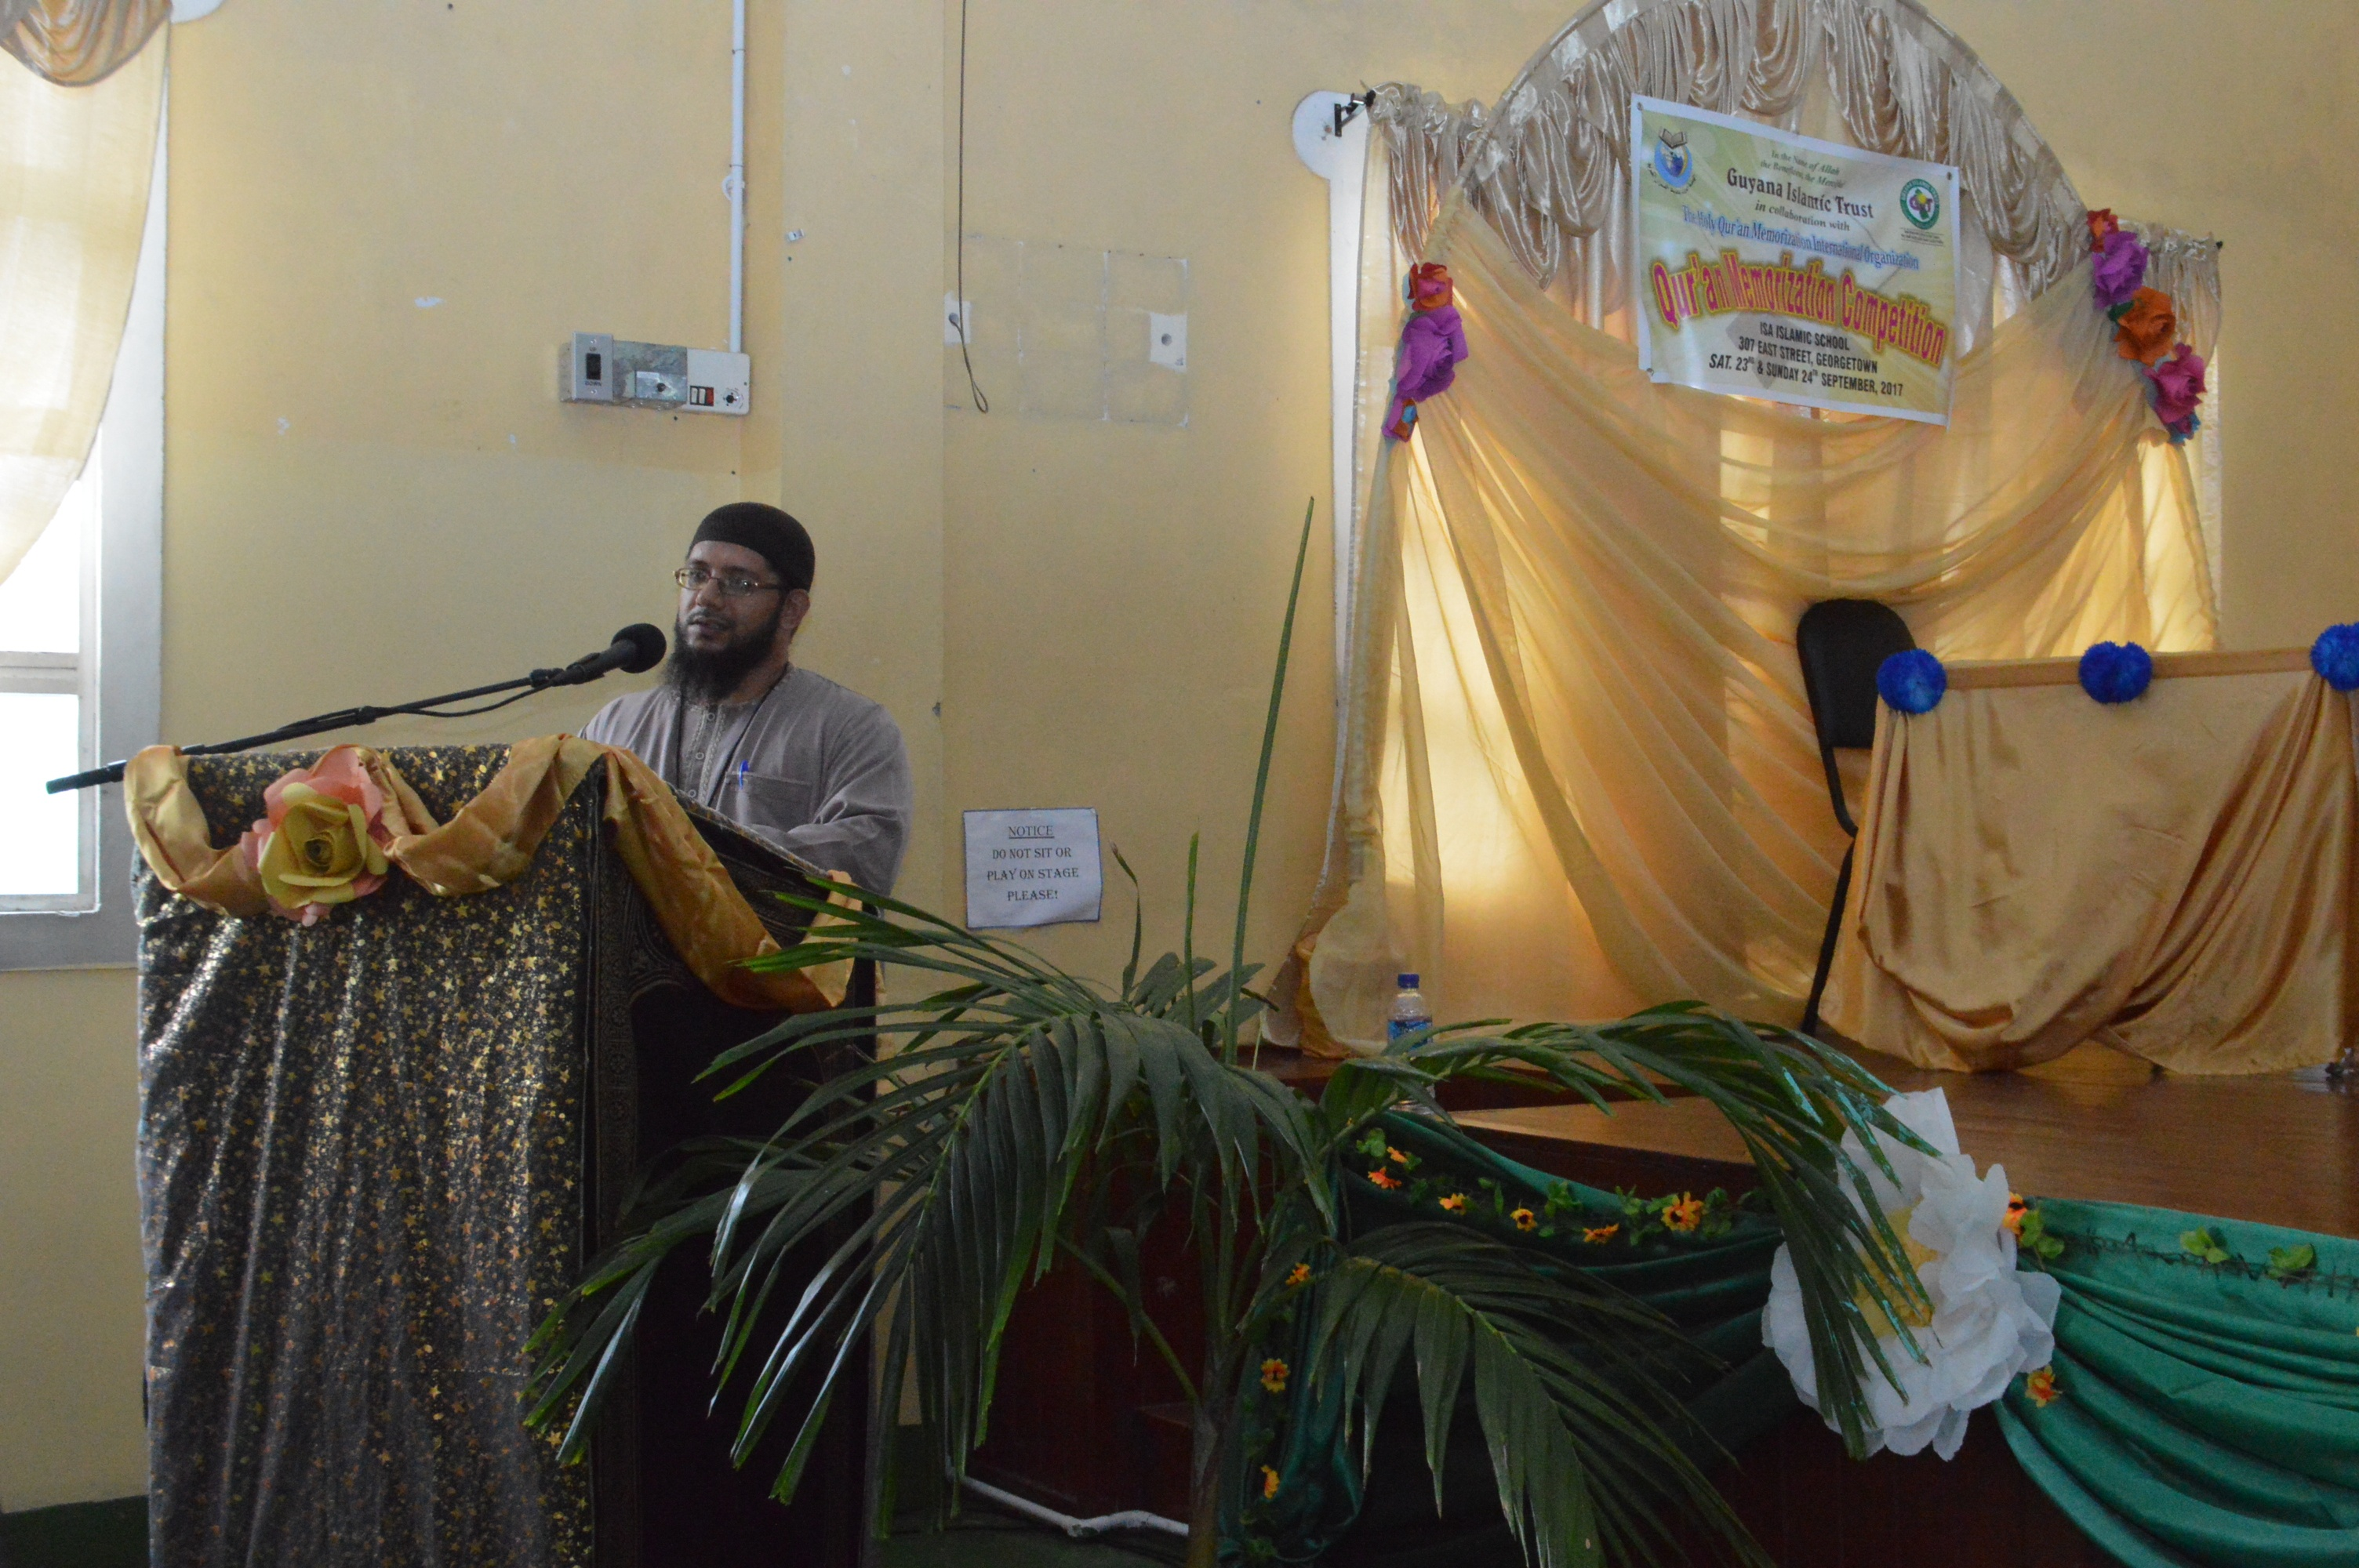 Sh. Abdool Aleem Rahim, President of the GIT gives Remarks